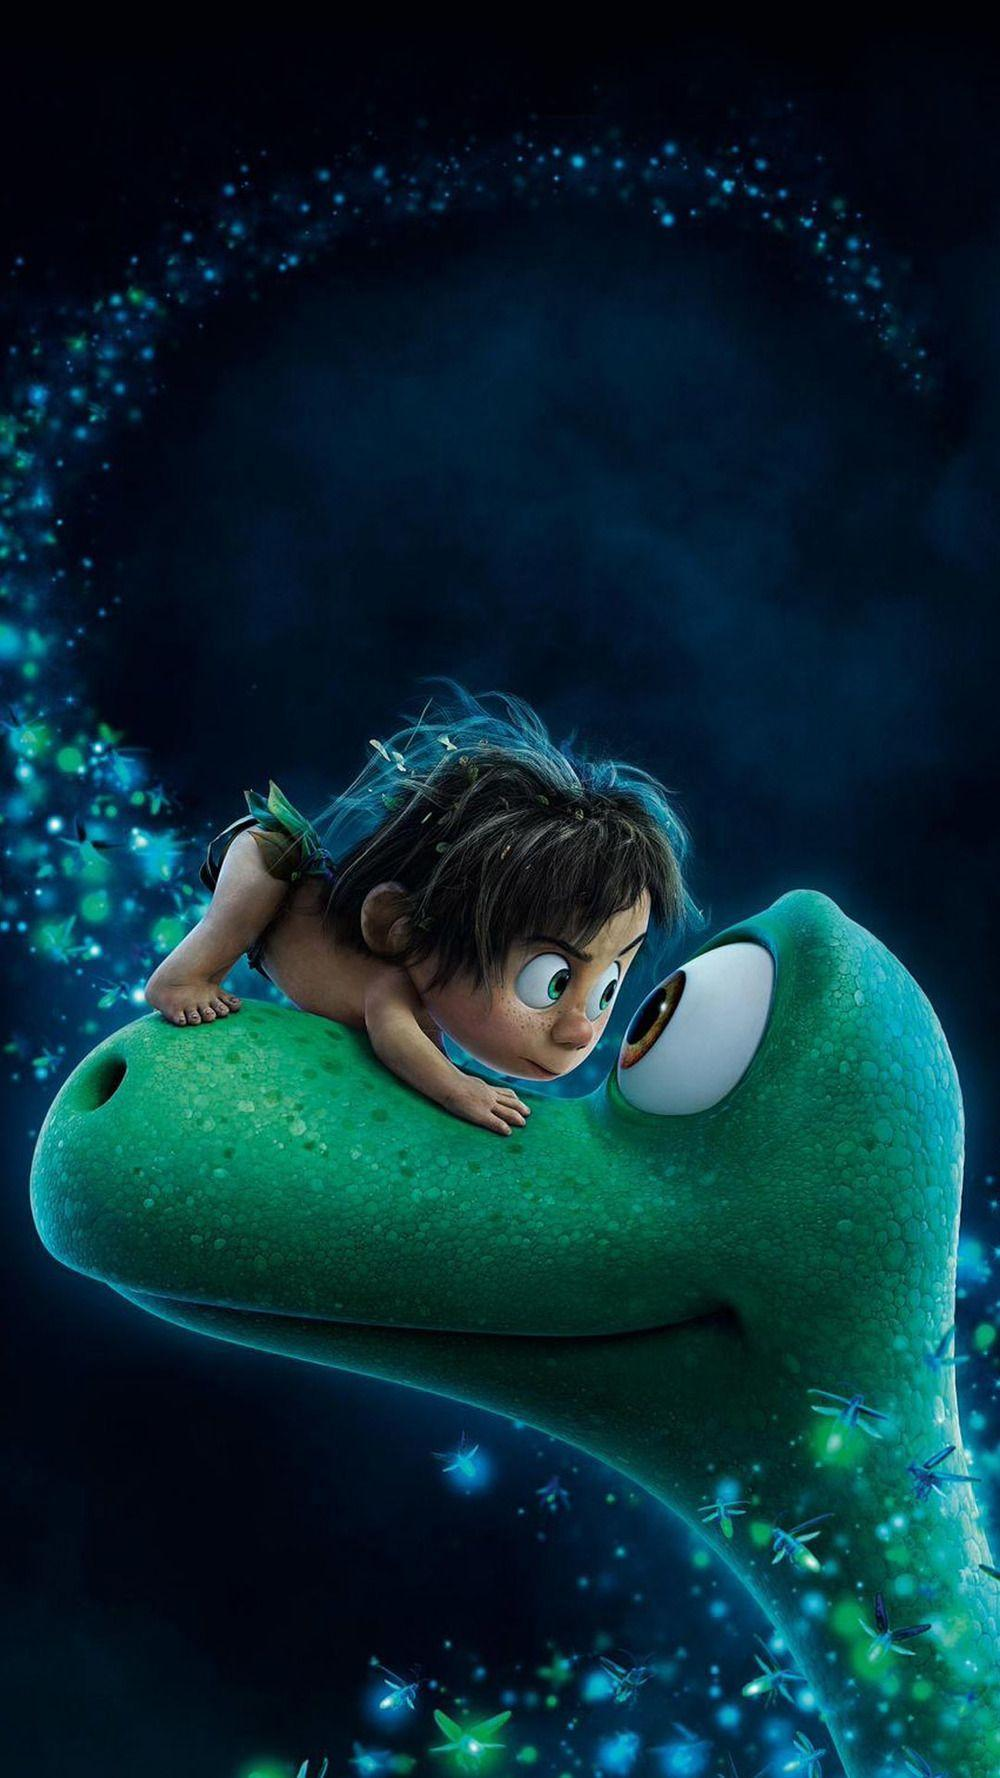 The Good Dinosaur: Downloadable Wallpapers for iOS & Android Phones